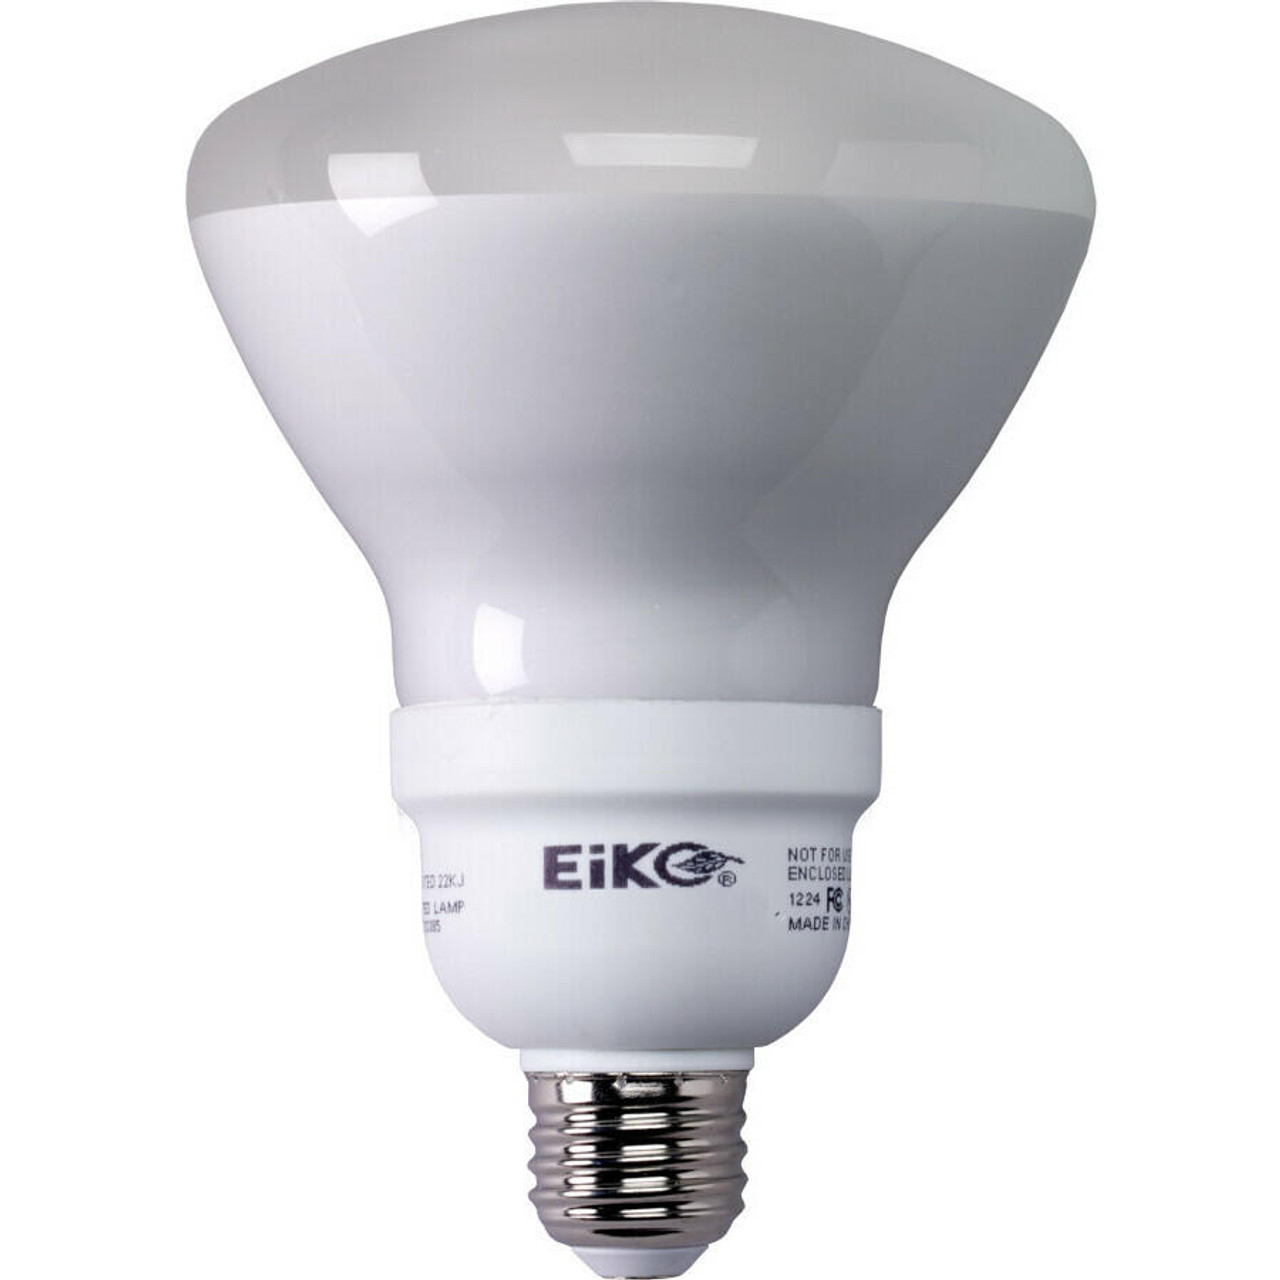 EiKO SP15/R30/27K 15W 120V 2700K R30 Shaped, SP15/R30/27K or EiKO